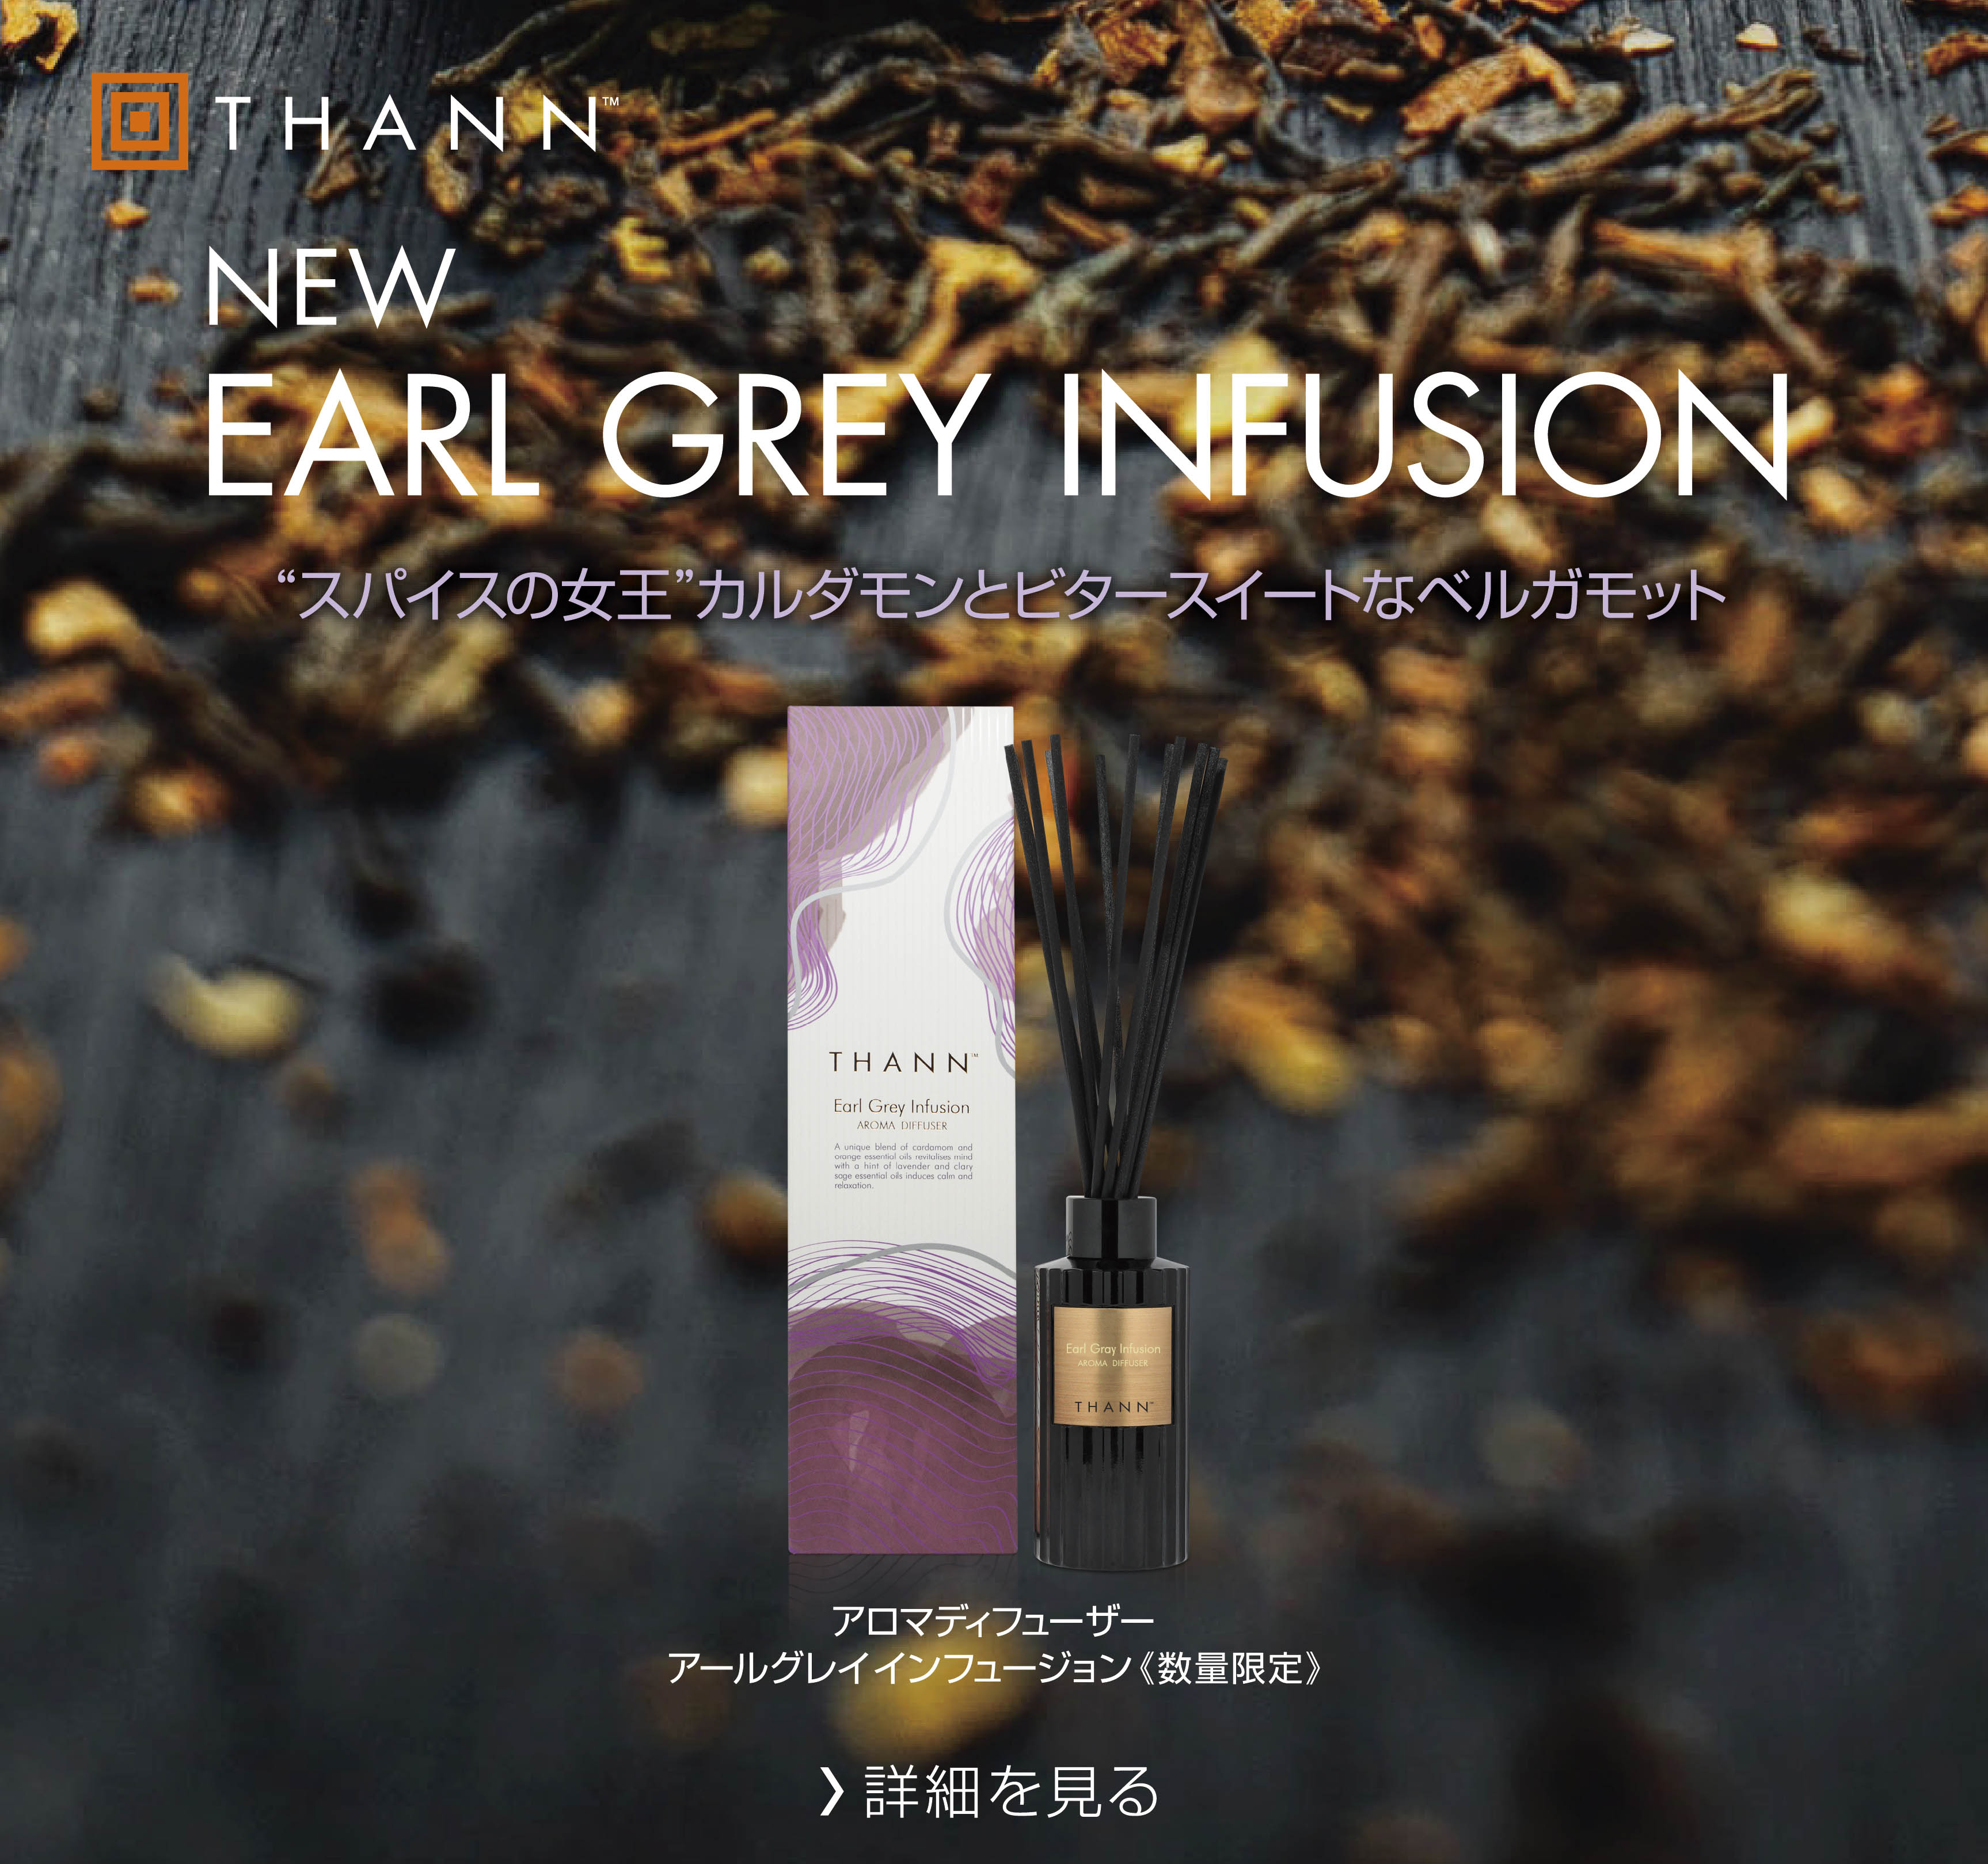 EARL GREY INFUSION